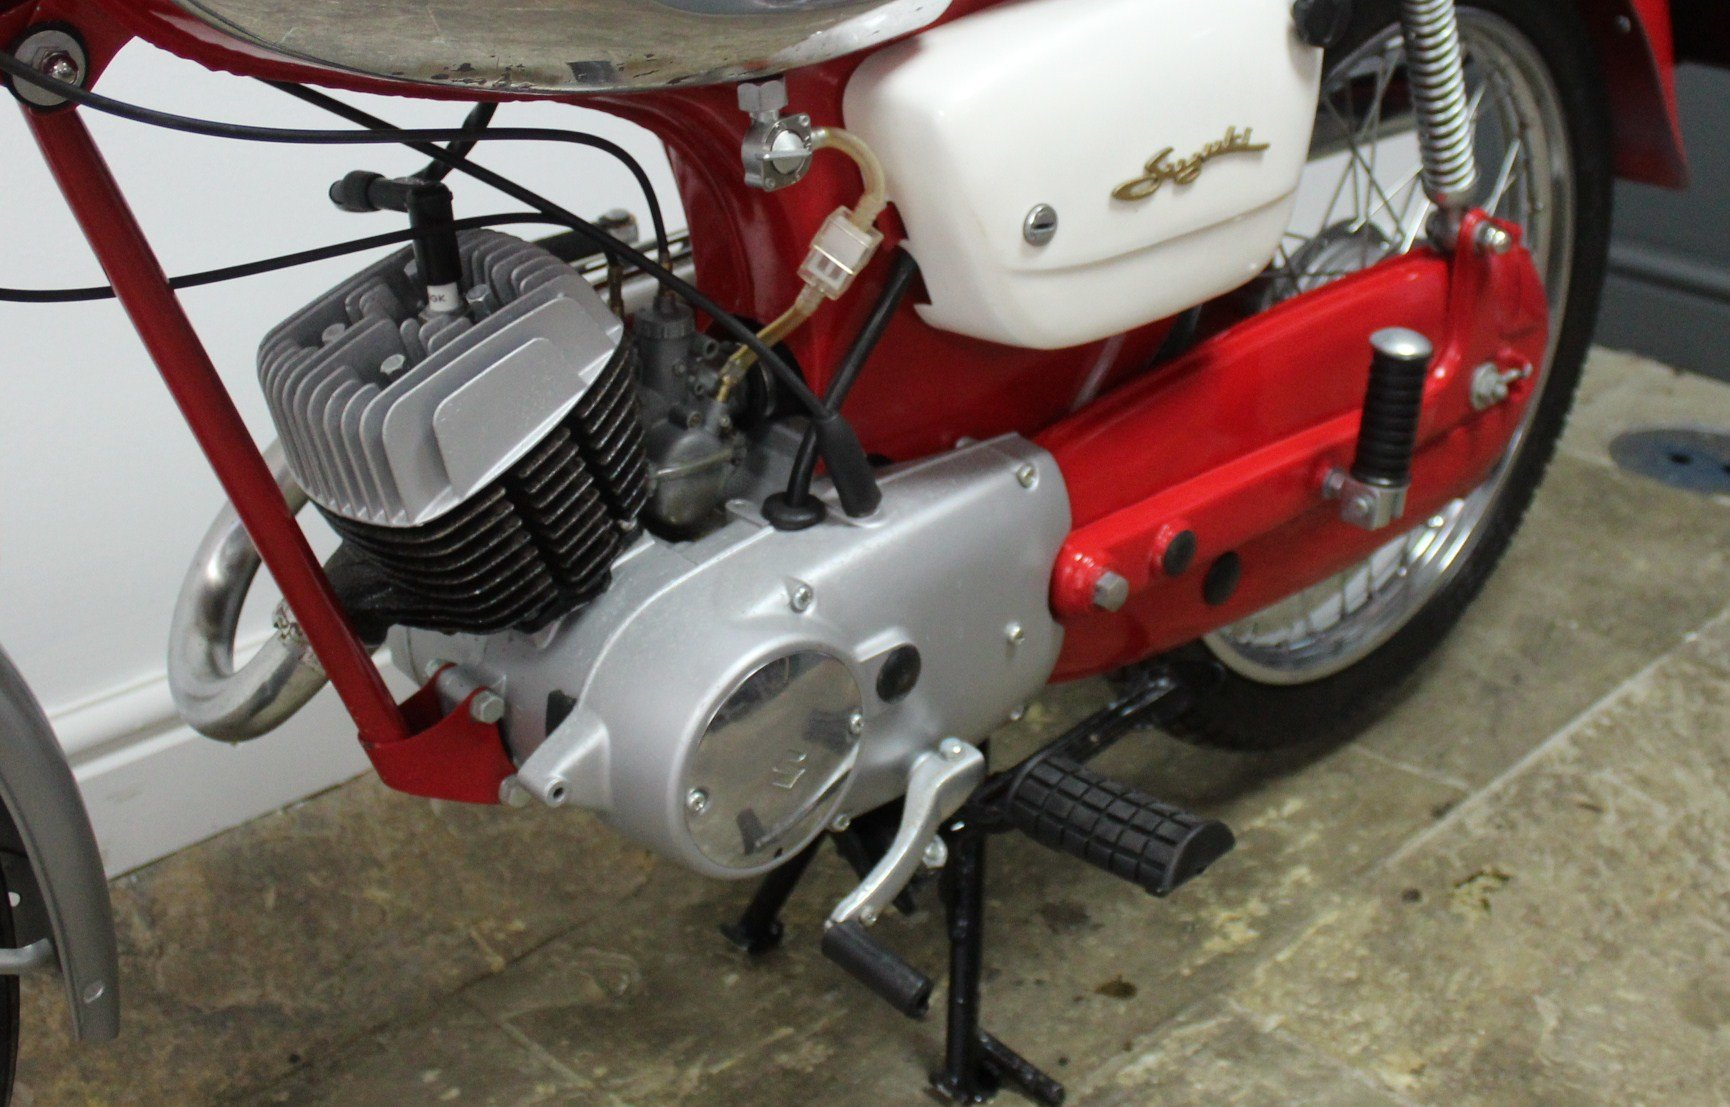 1966 Suzuki 80cc K11 Sports Excellent Condition SOLD (picture 6 of 6)